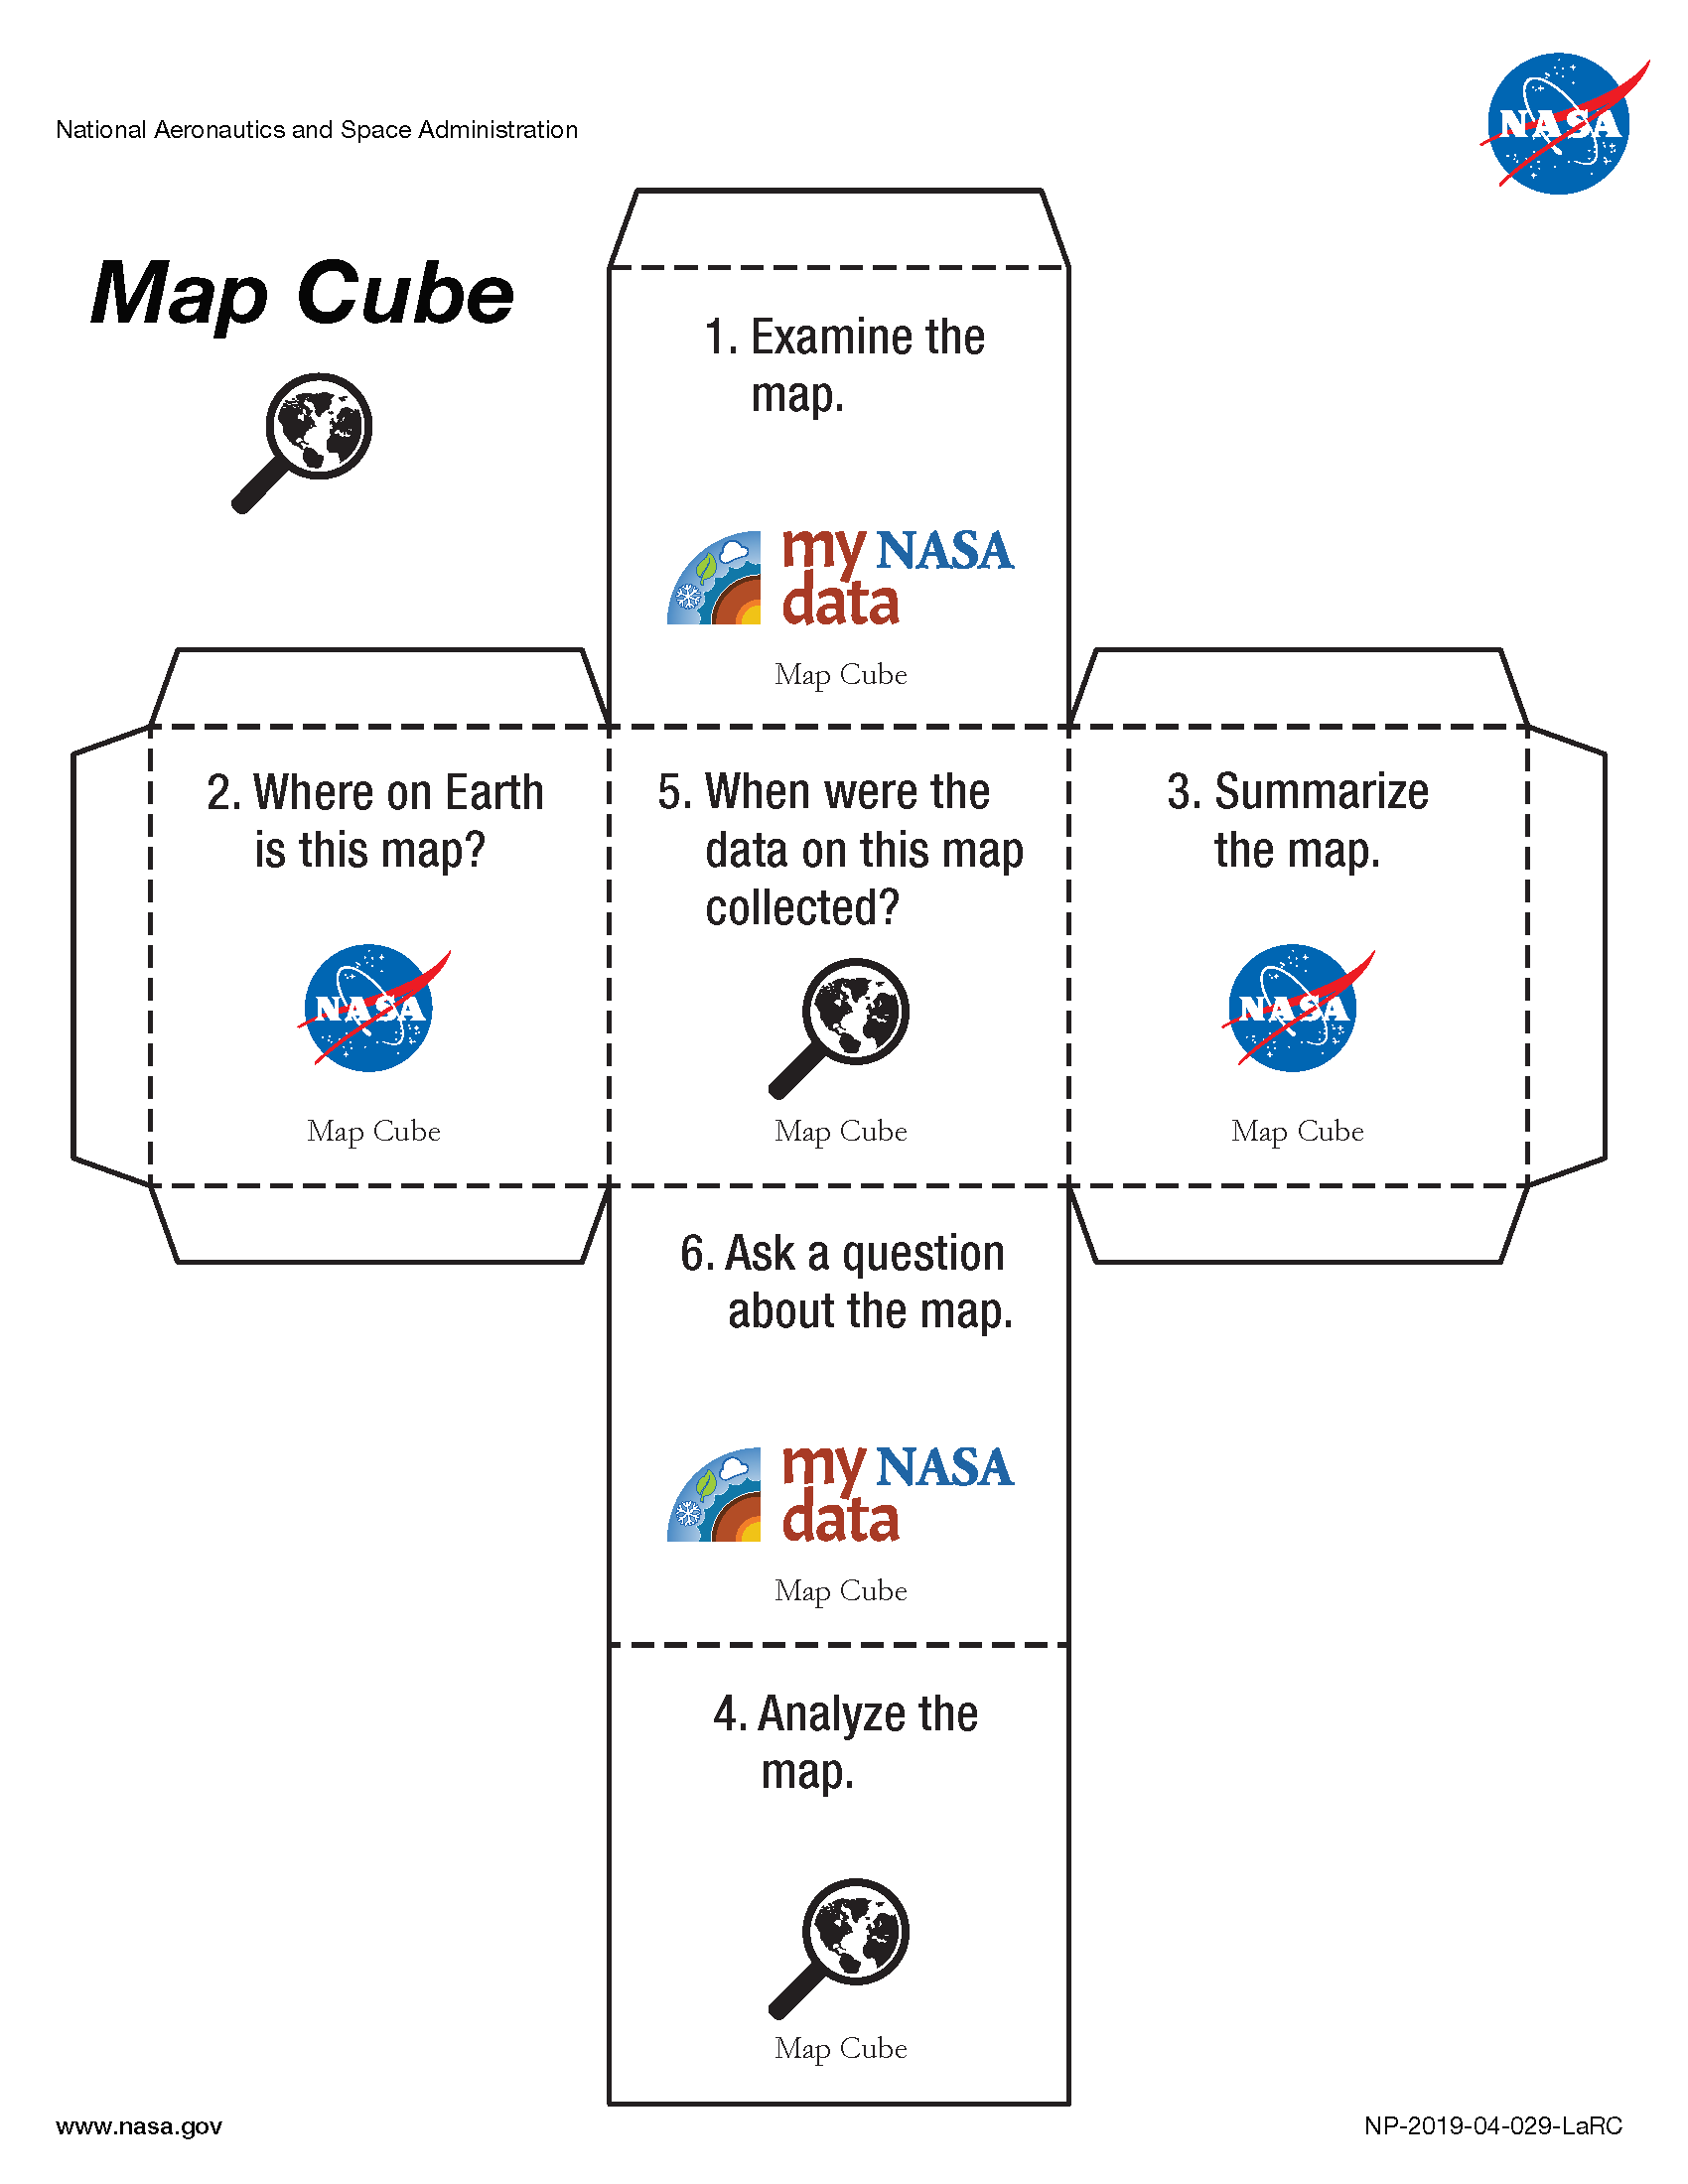 My NASA Data - Data Literacy Cubes - Map Cube Image